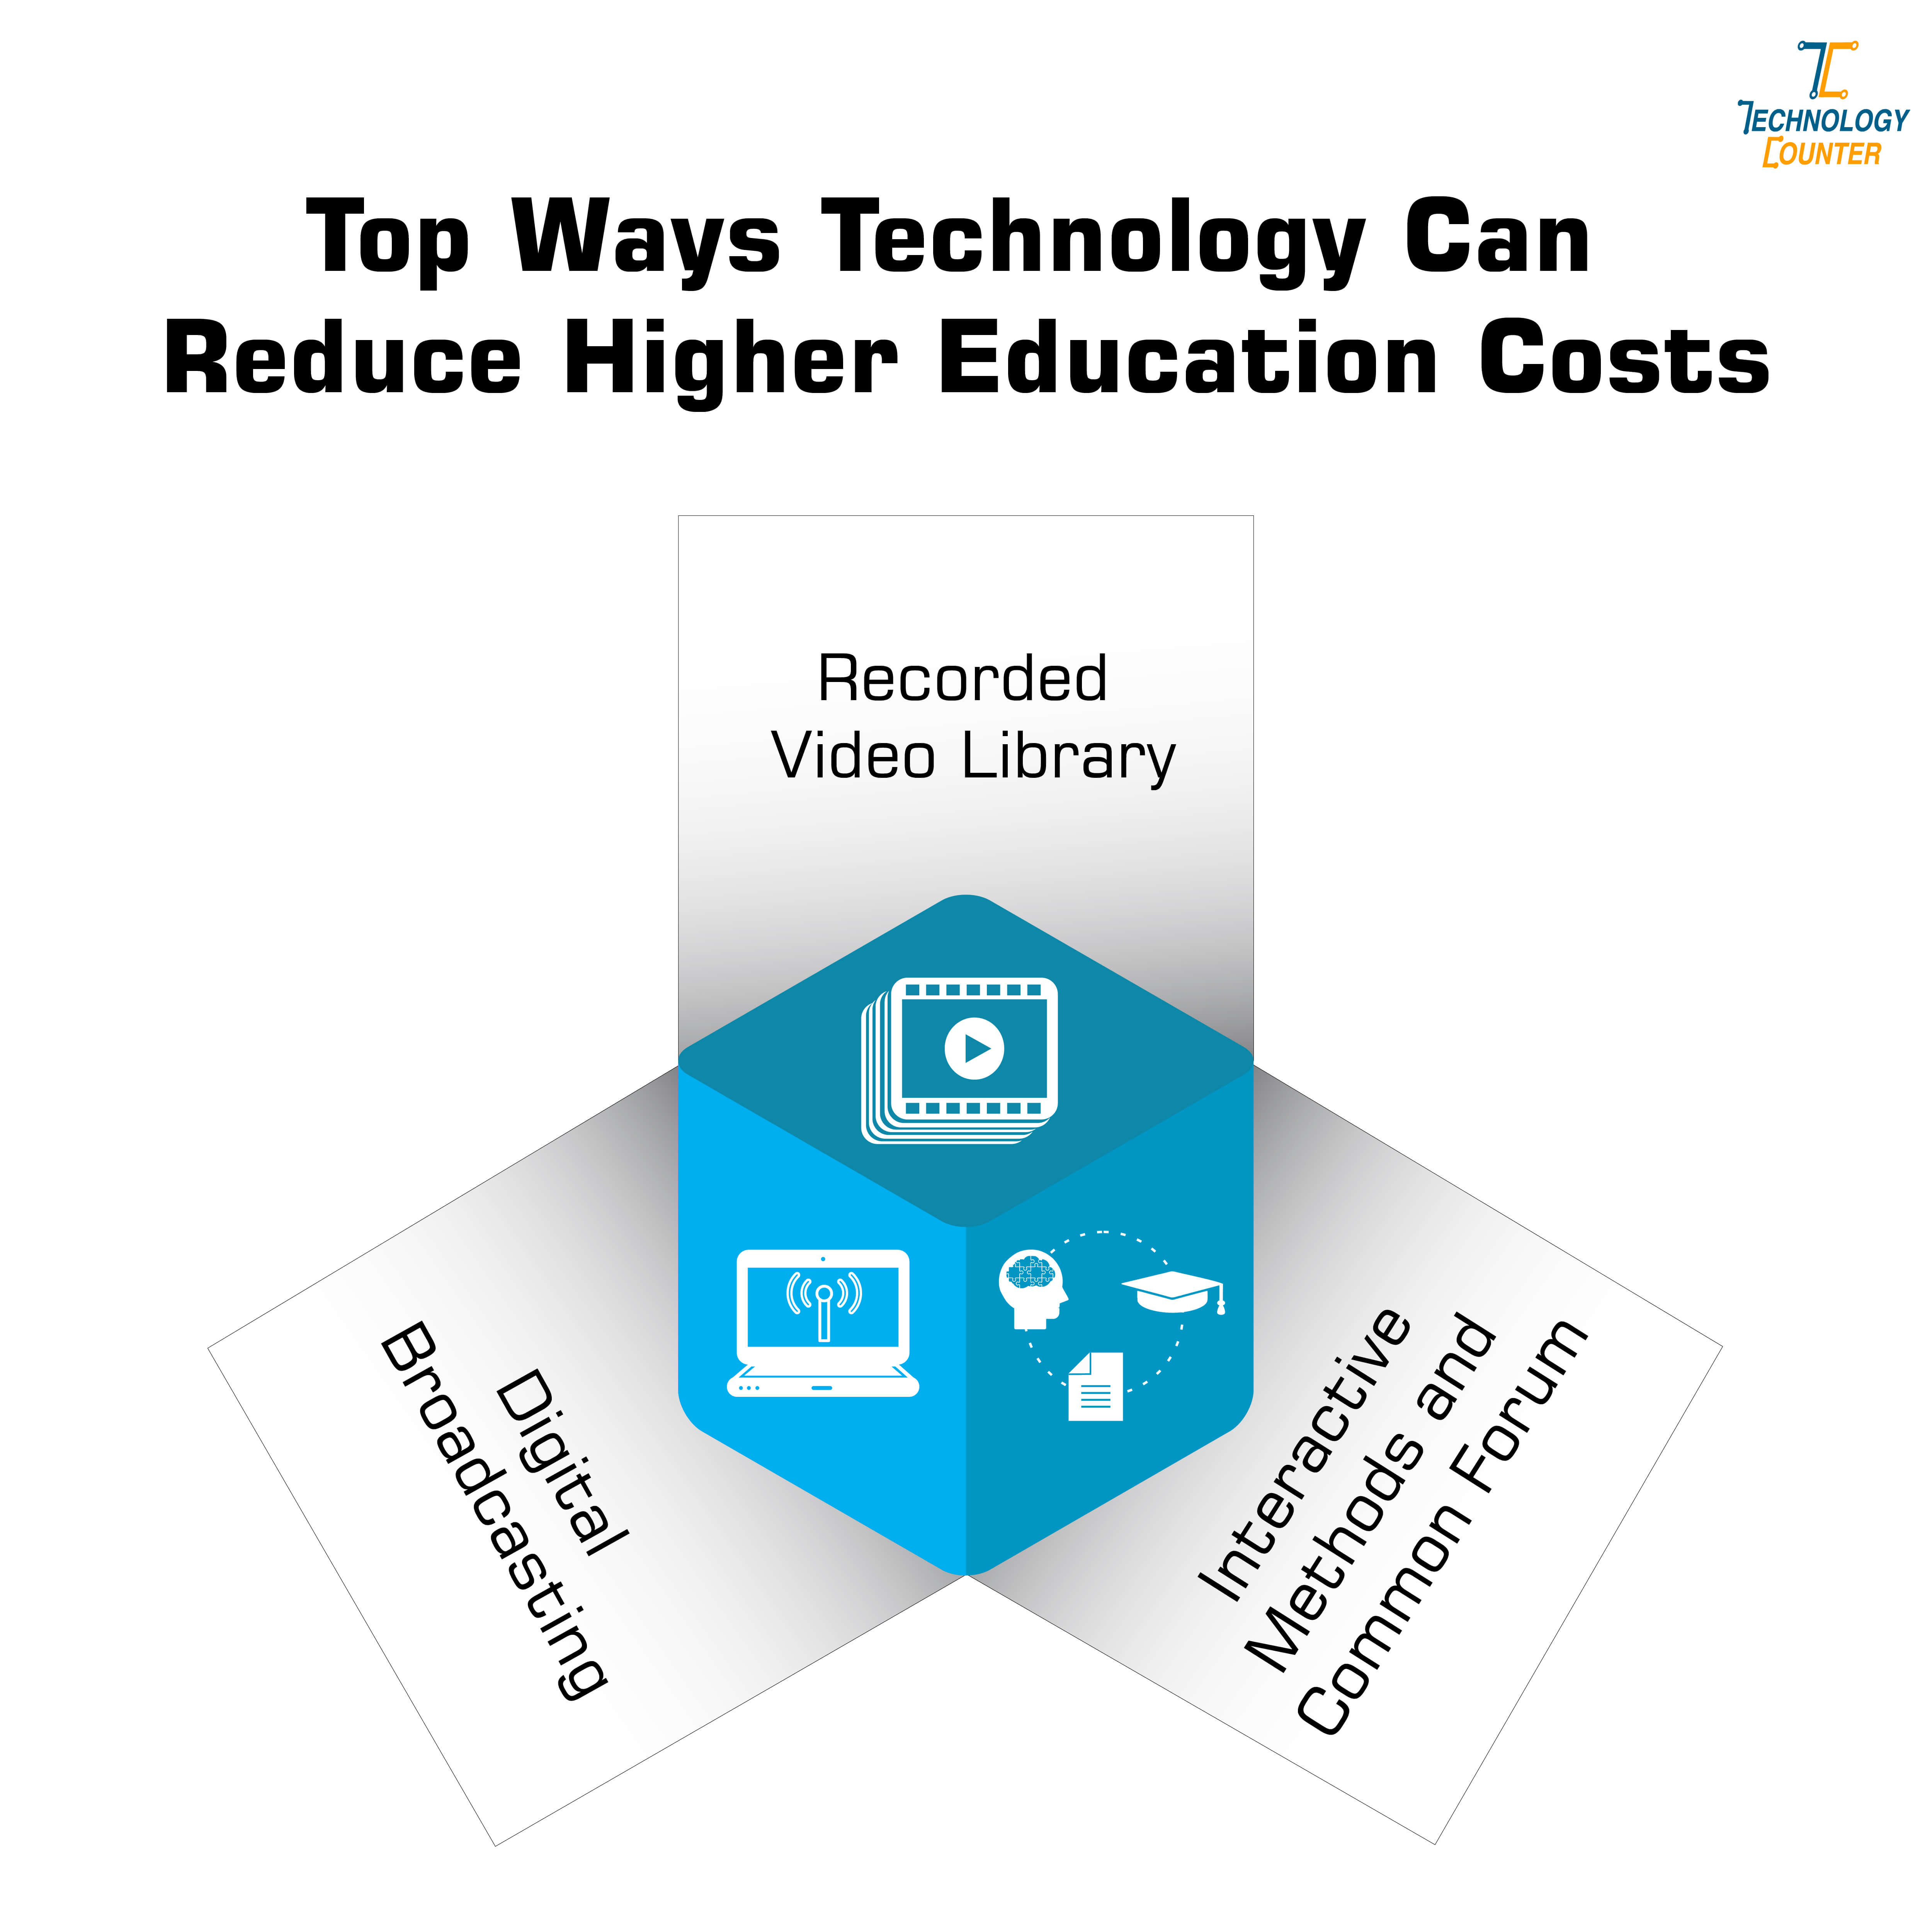 Top Ways Technology Can Reduce Higher Education Costs